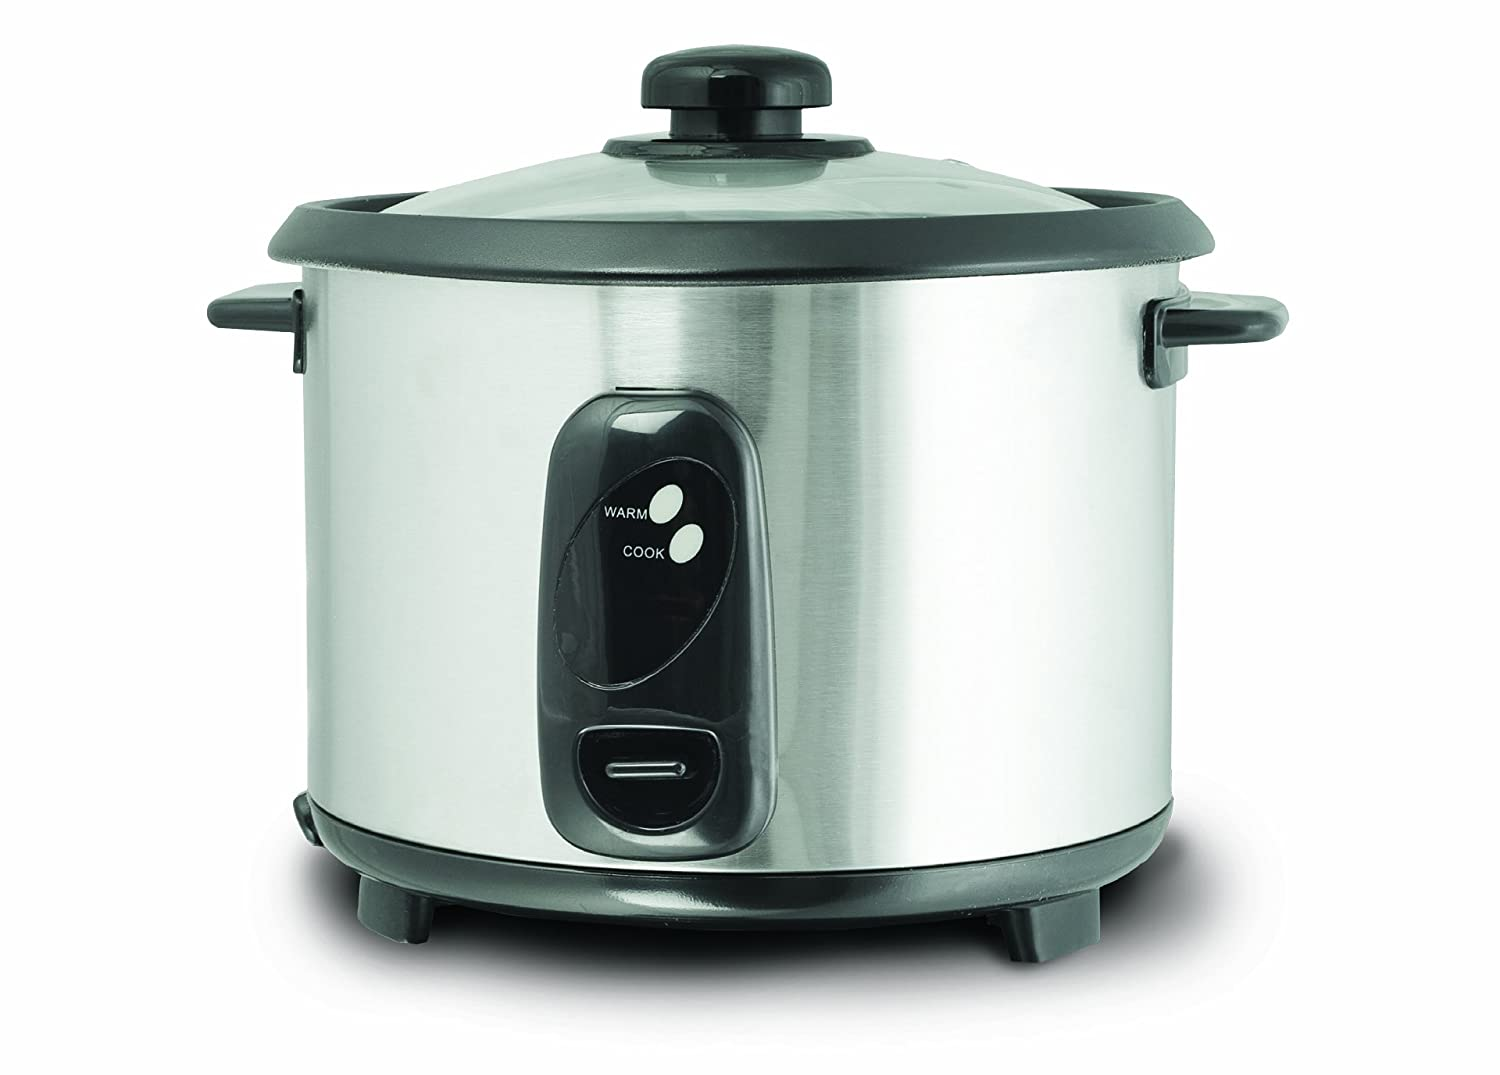 Amazon.com: Daewoo DEAW-DRC444 1.8-Liter Stainless Steel Rice Cooker ...